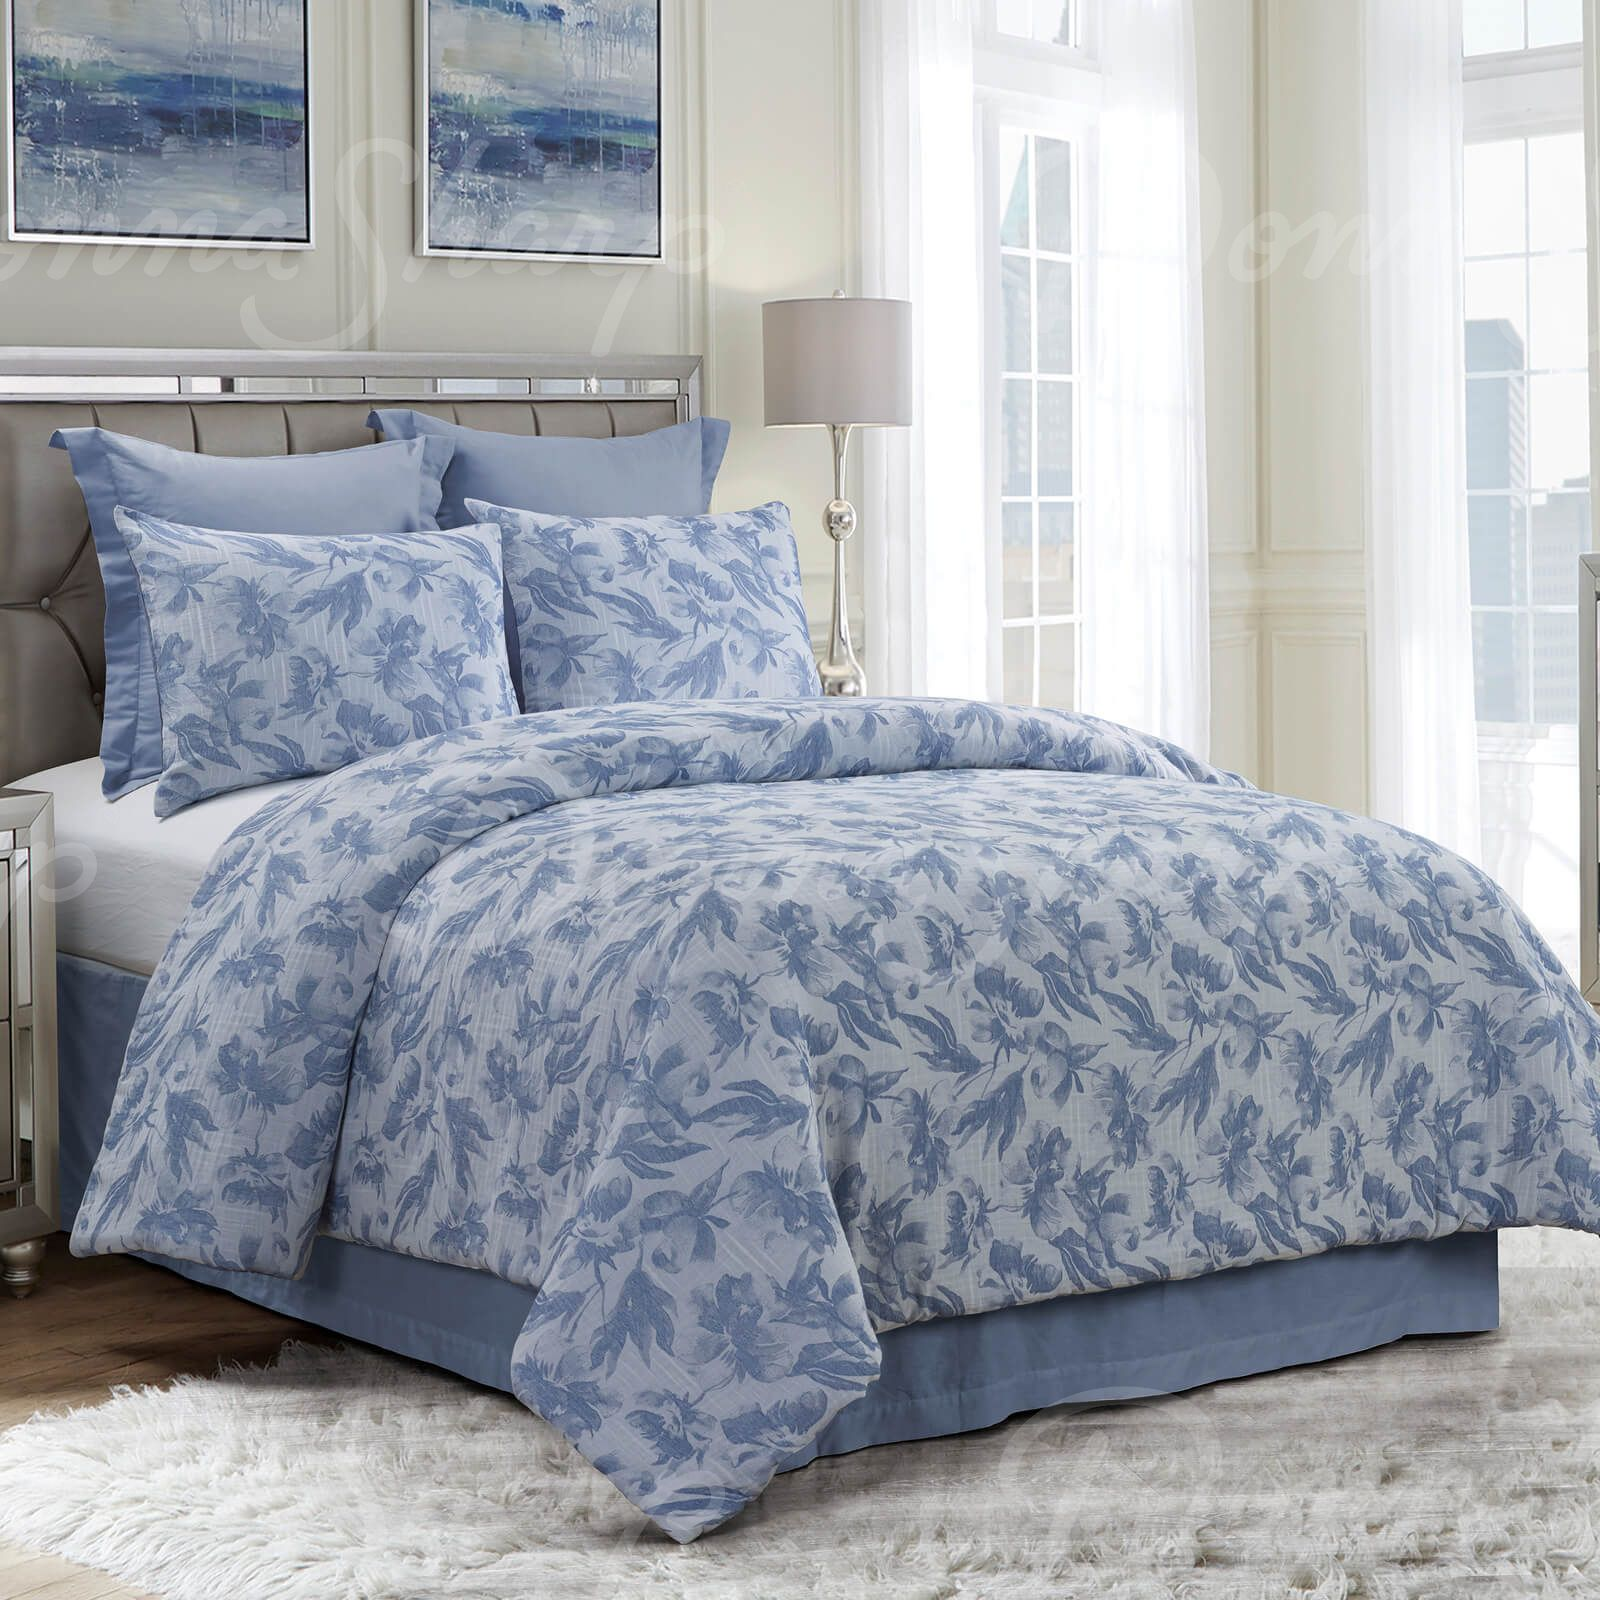 Queen Comforter Set Almaria Soft Blue